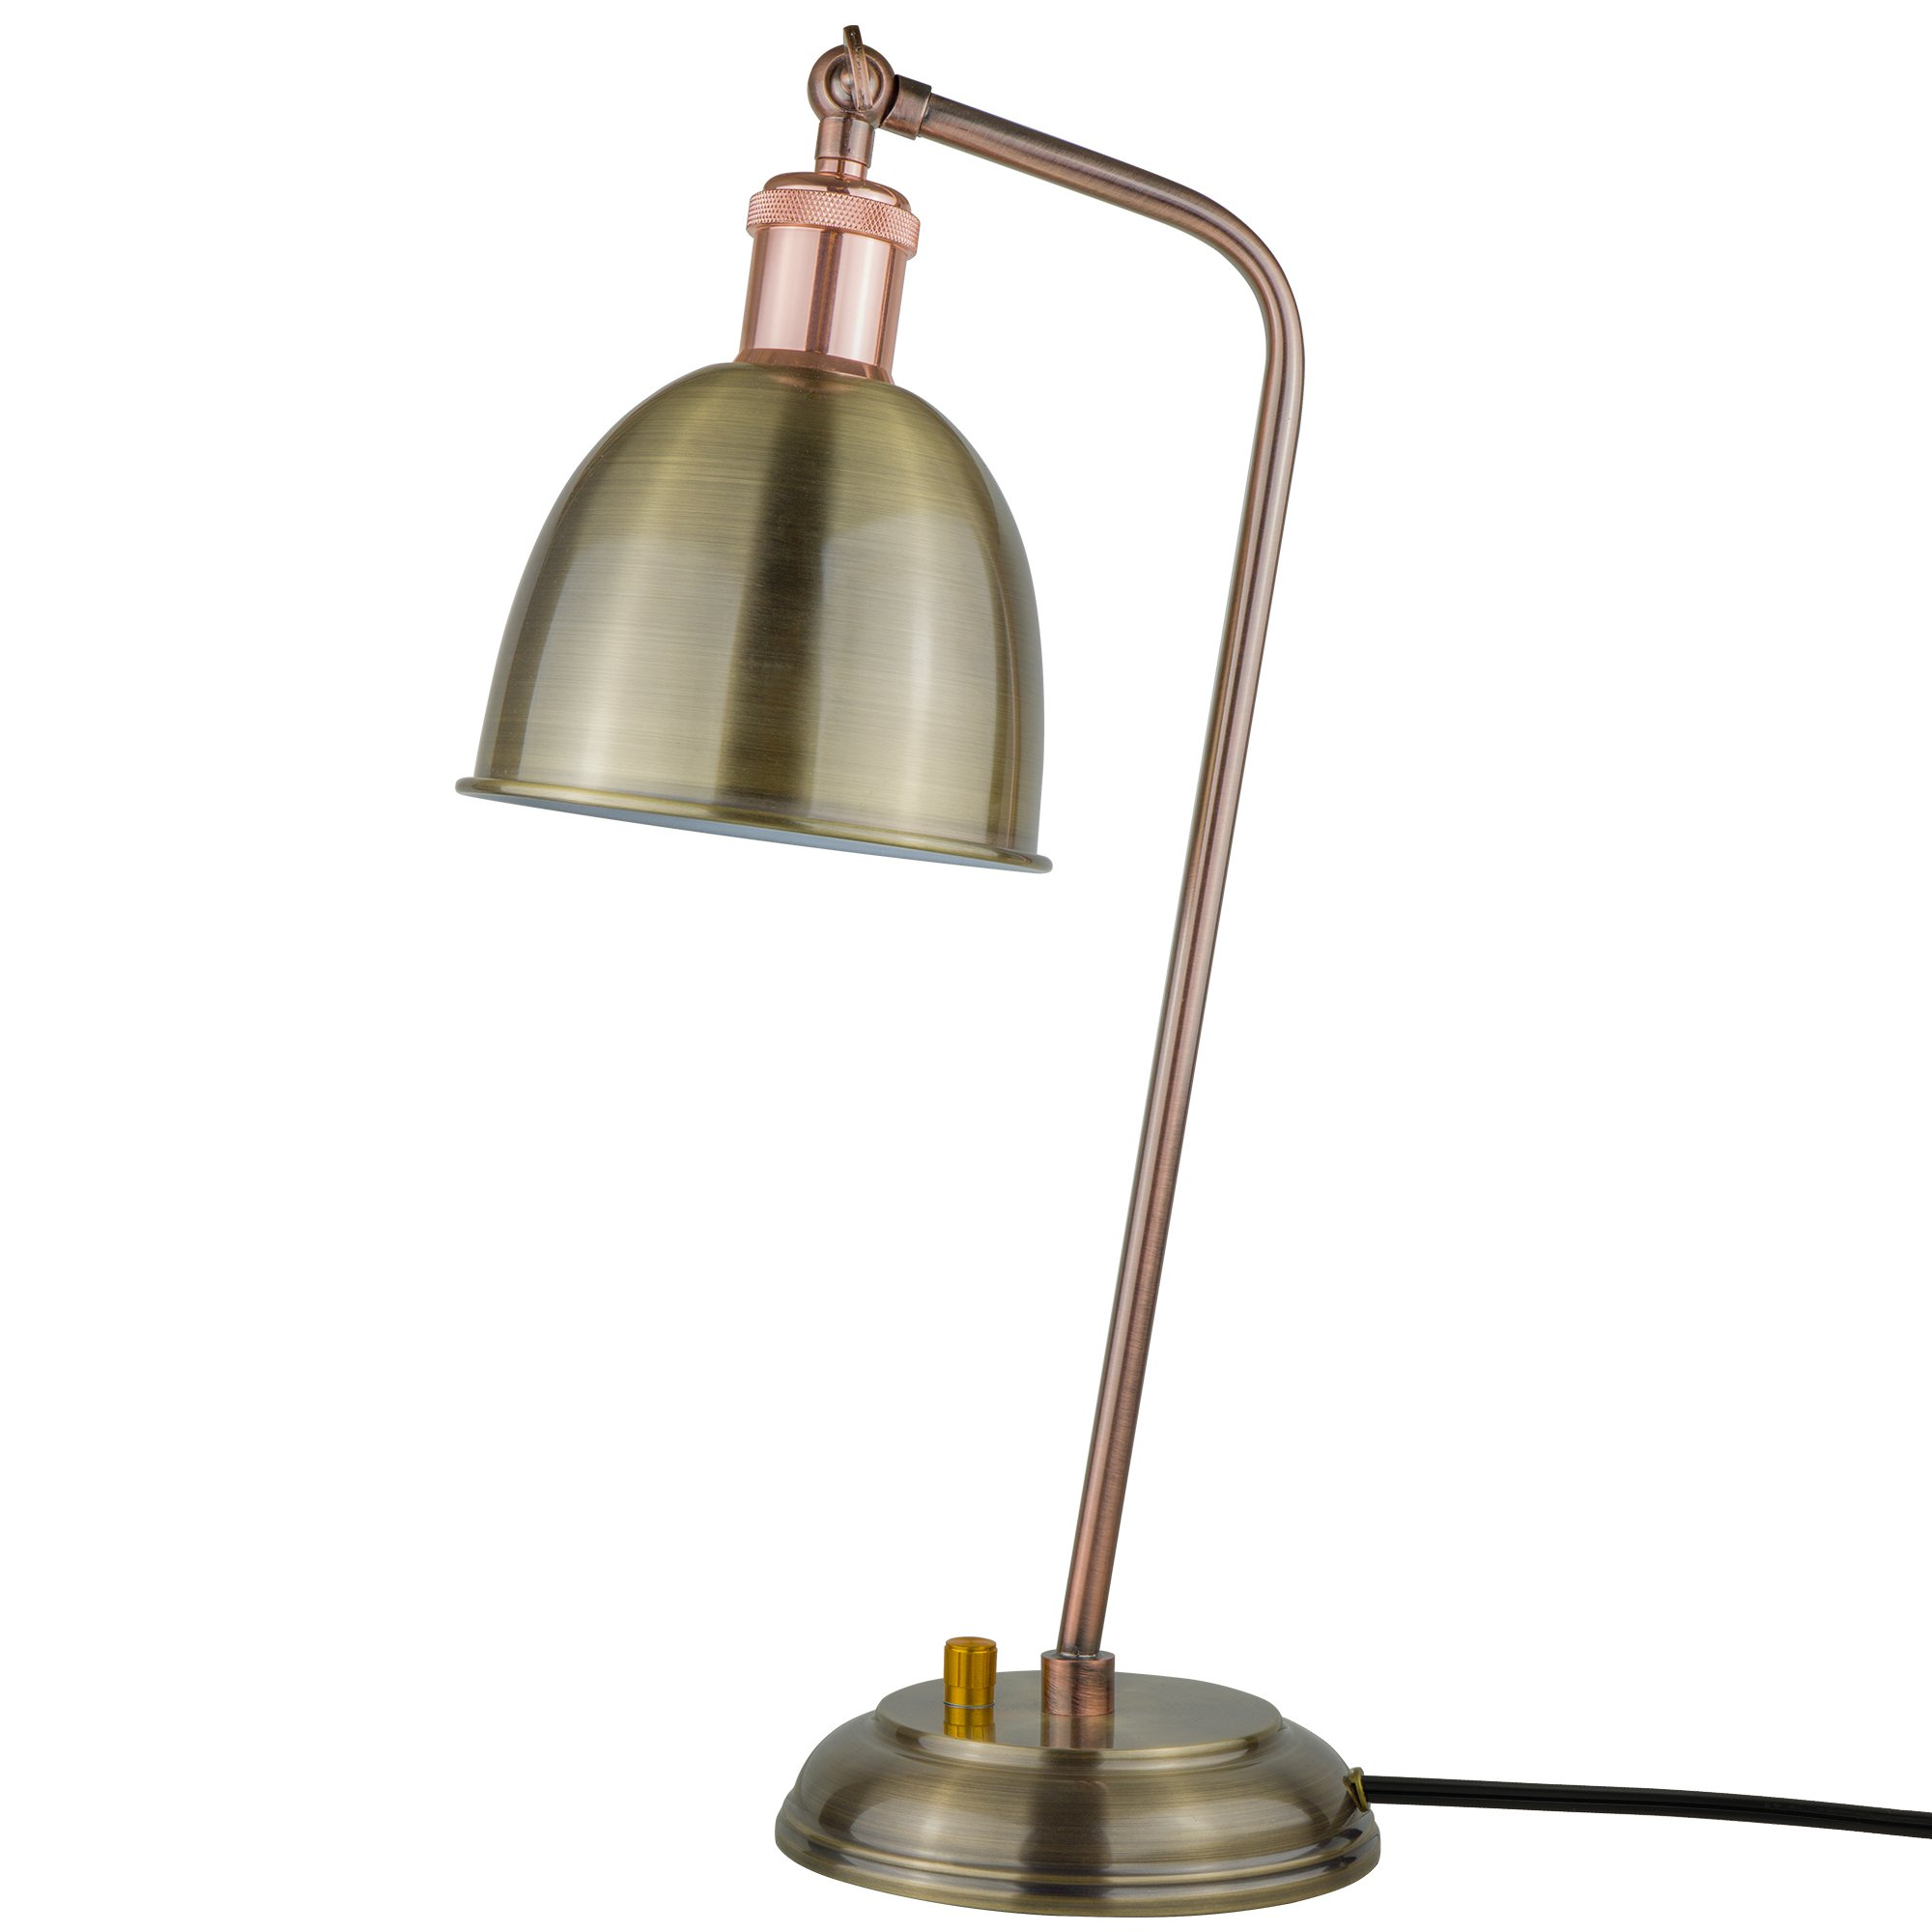 Starthi Antique Brass Table Lamp Industrial Dimmable Desk Light with Bronze Adjustable Lamp Shade by Starthi